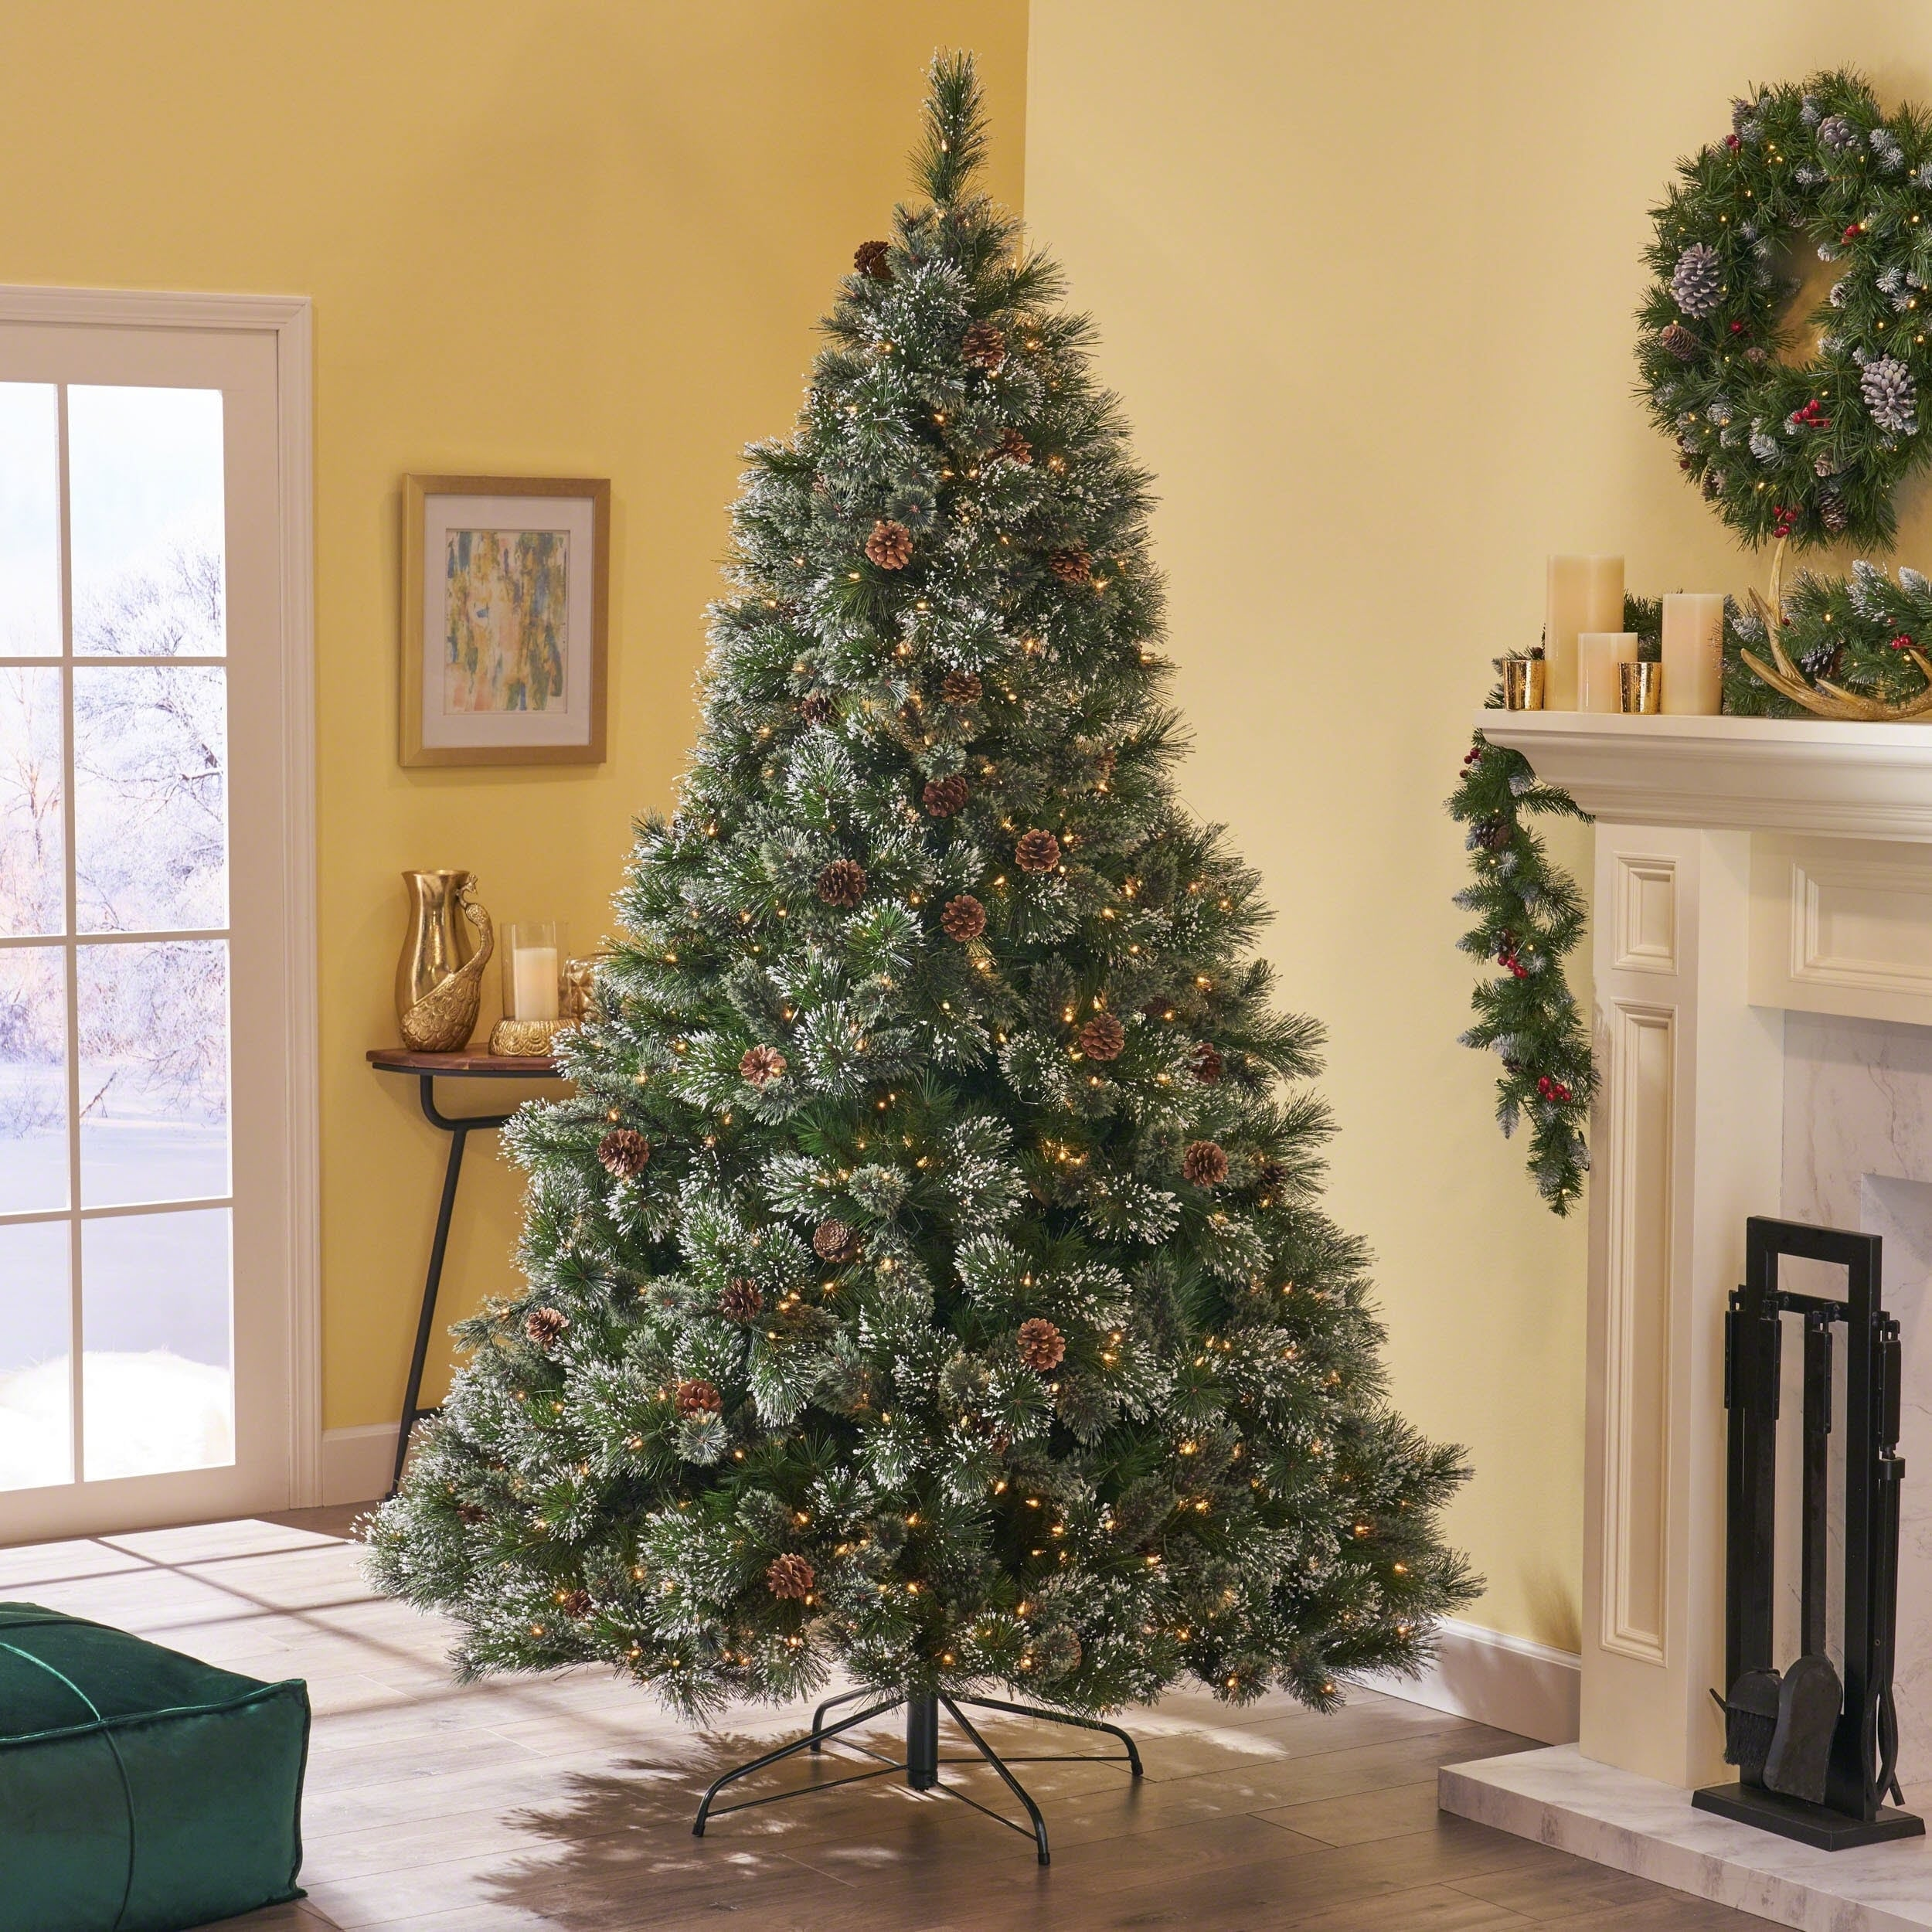 9ft Christmas Tree.7ft Cashmere Pre Lit Unlit Multi Colored Artificial Christmas Tree W Snowy Branches Pinecones By Christopher Knight Home